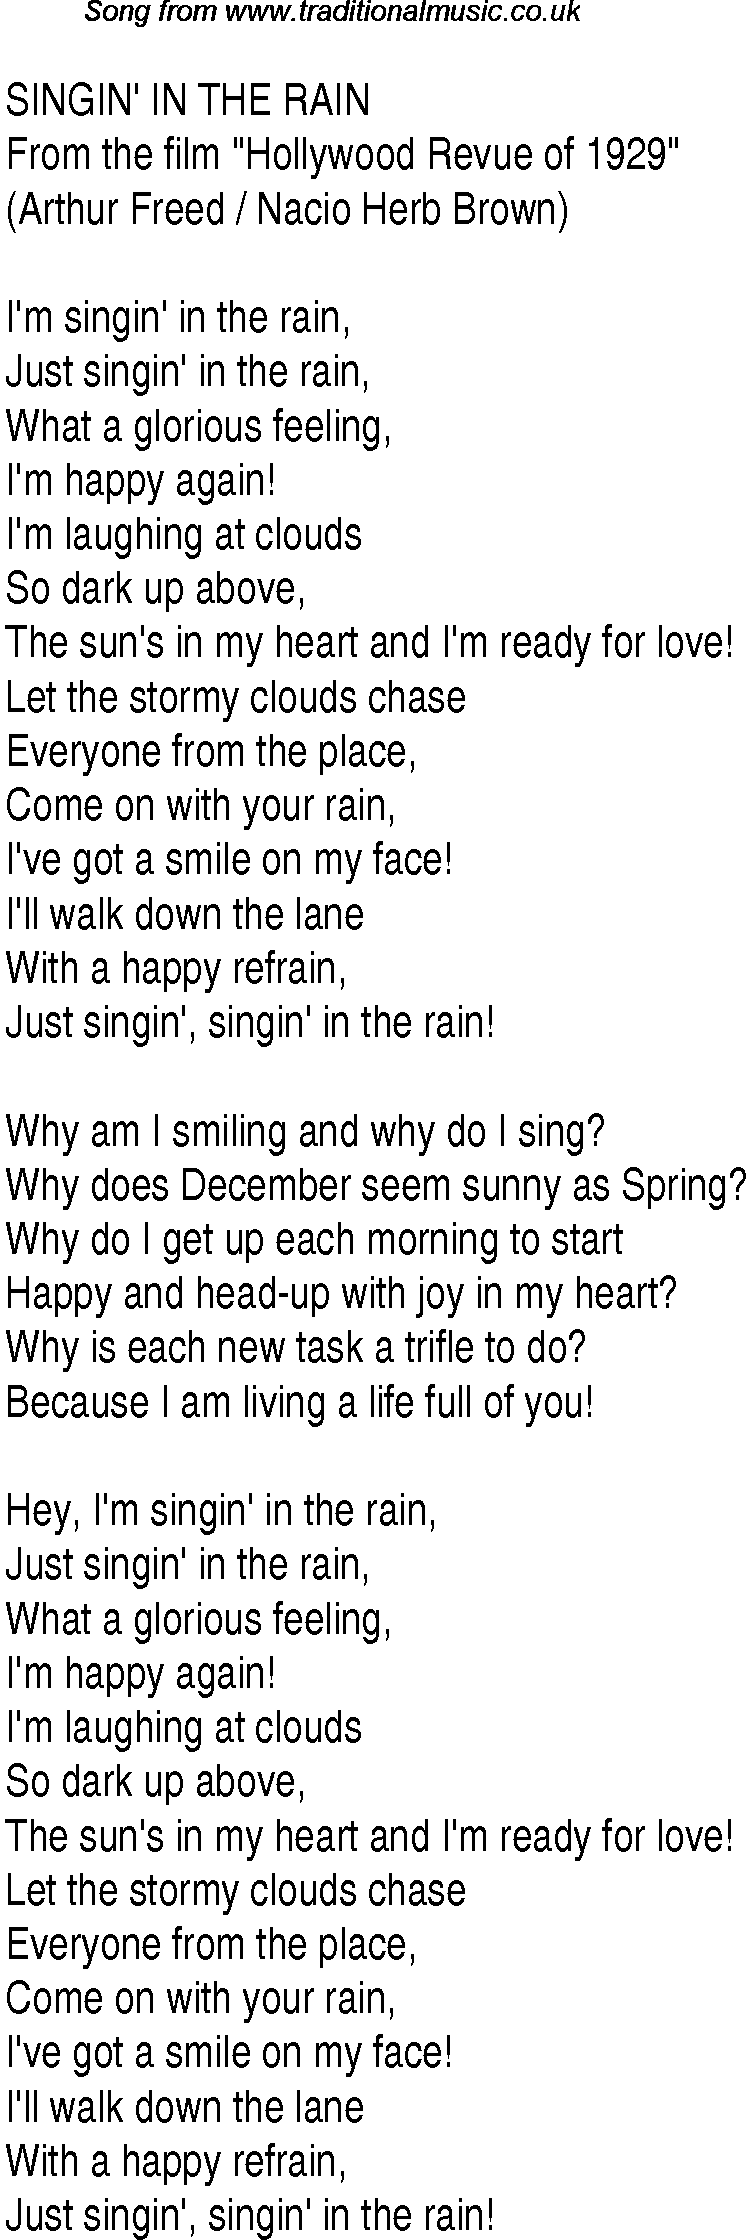 Prince - Purple Rain Lyrics SongMeanings